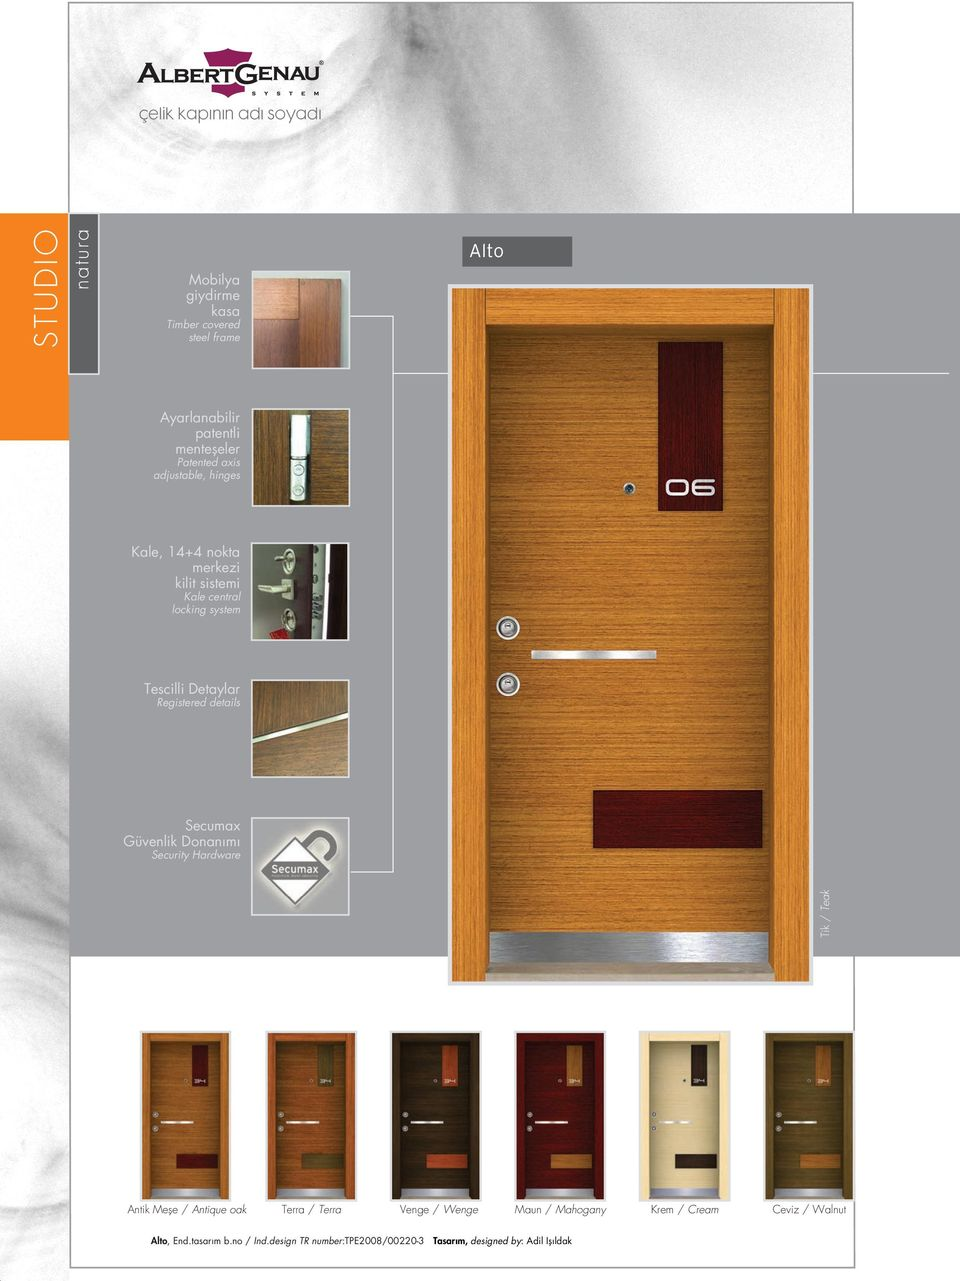 Registered details Secumax Güvenlik Donan m Security Hardware Tik / Teak Antik Mefle / Antique oak Terra / Terra Venge